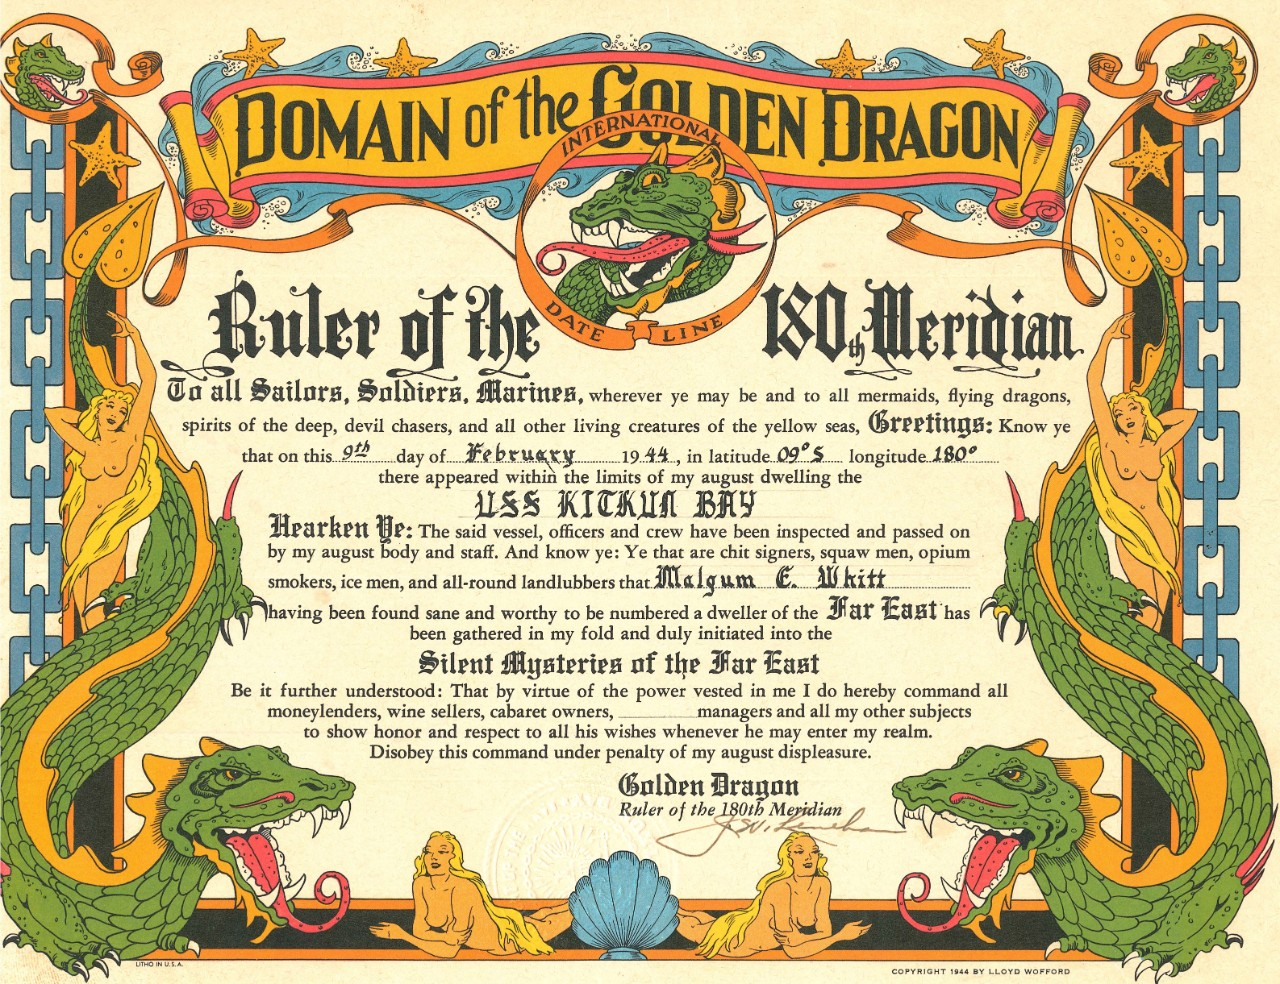 This colorful certificate marks C. Phm. Whitt's entering the Domain of the Golden Dragon as the ship crosses the 180th meridian three days later, 9 February 1944. (Donated by his son, Cmdr. David M. Whitt, Ships History, Naval History and Heritage Command)